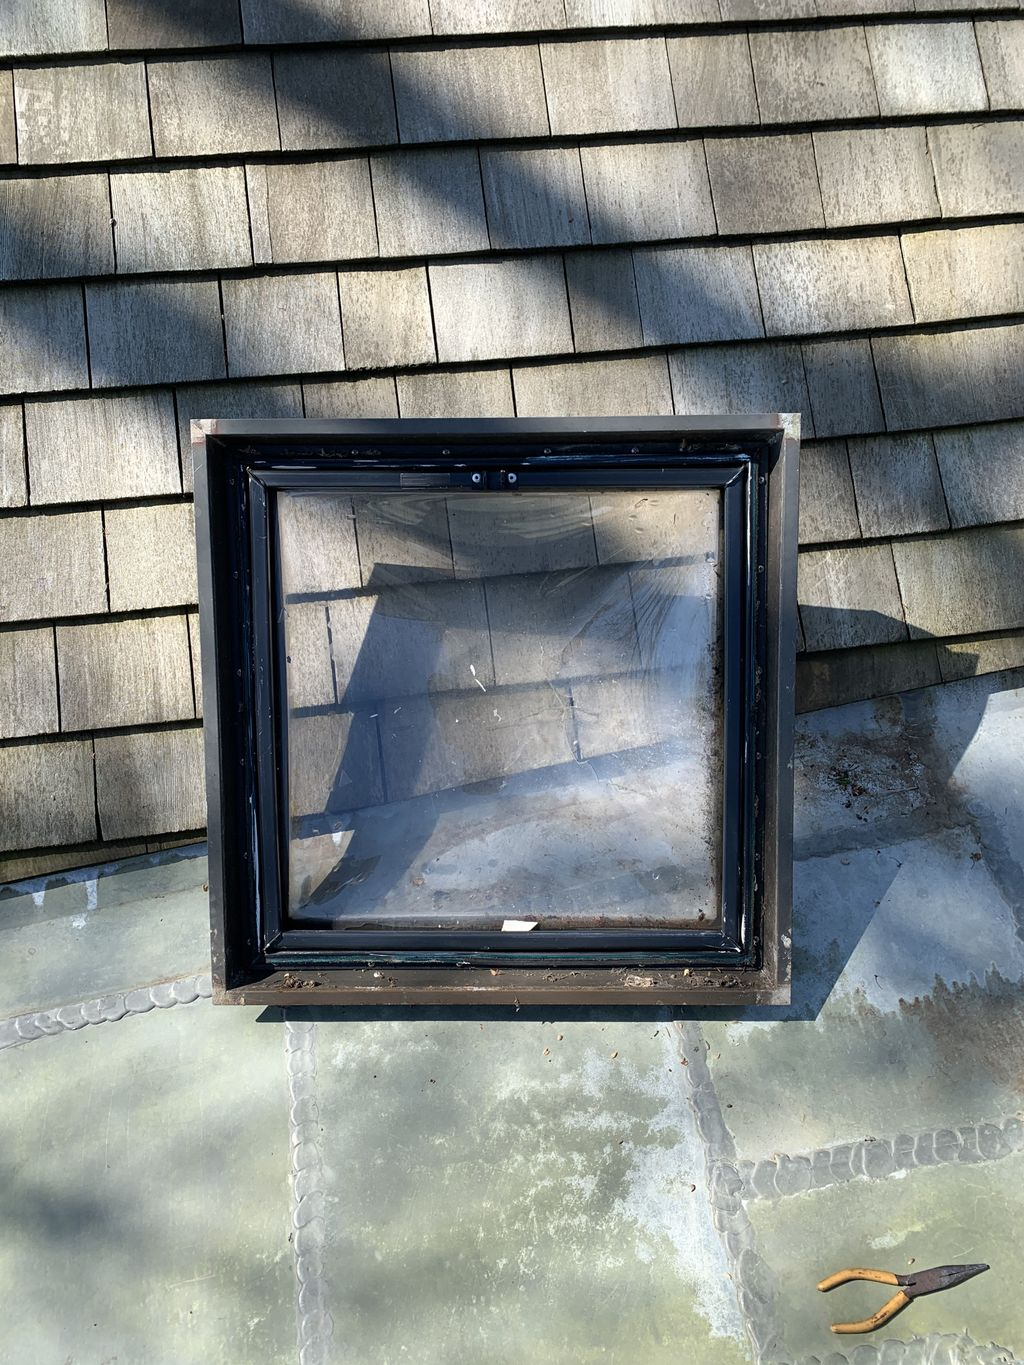 Skylight replacement